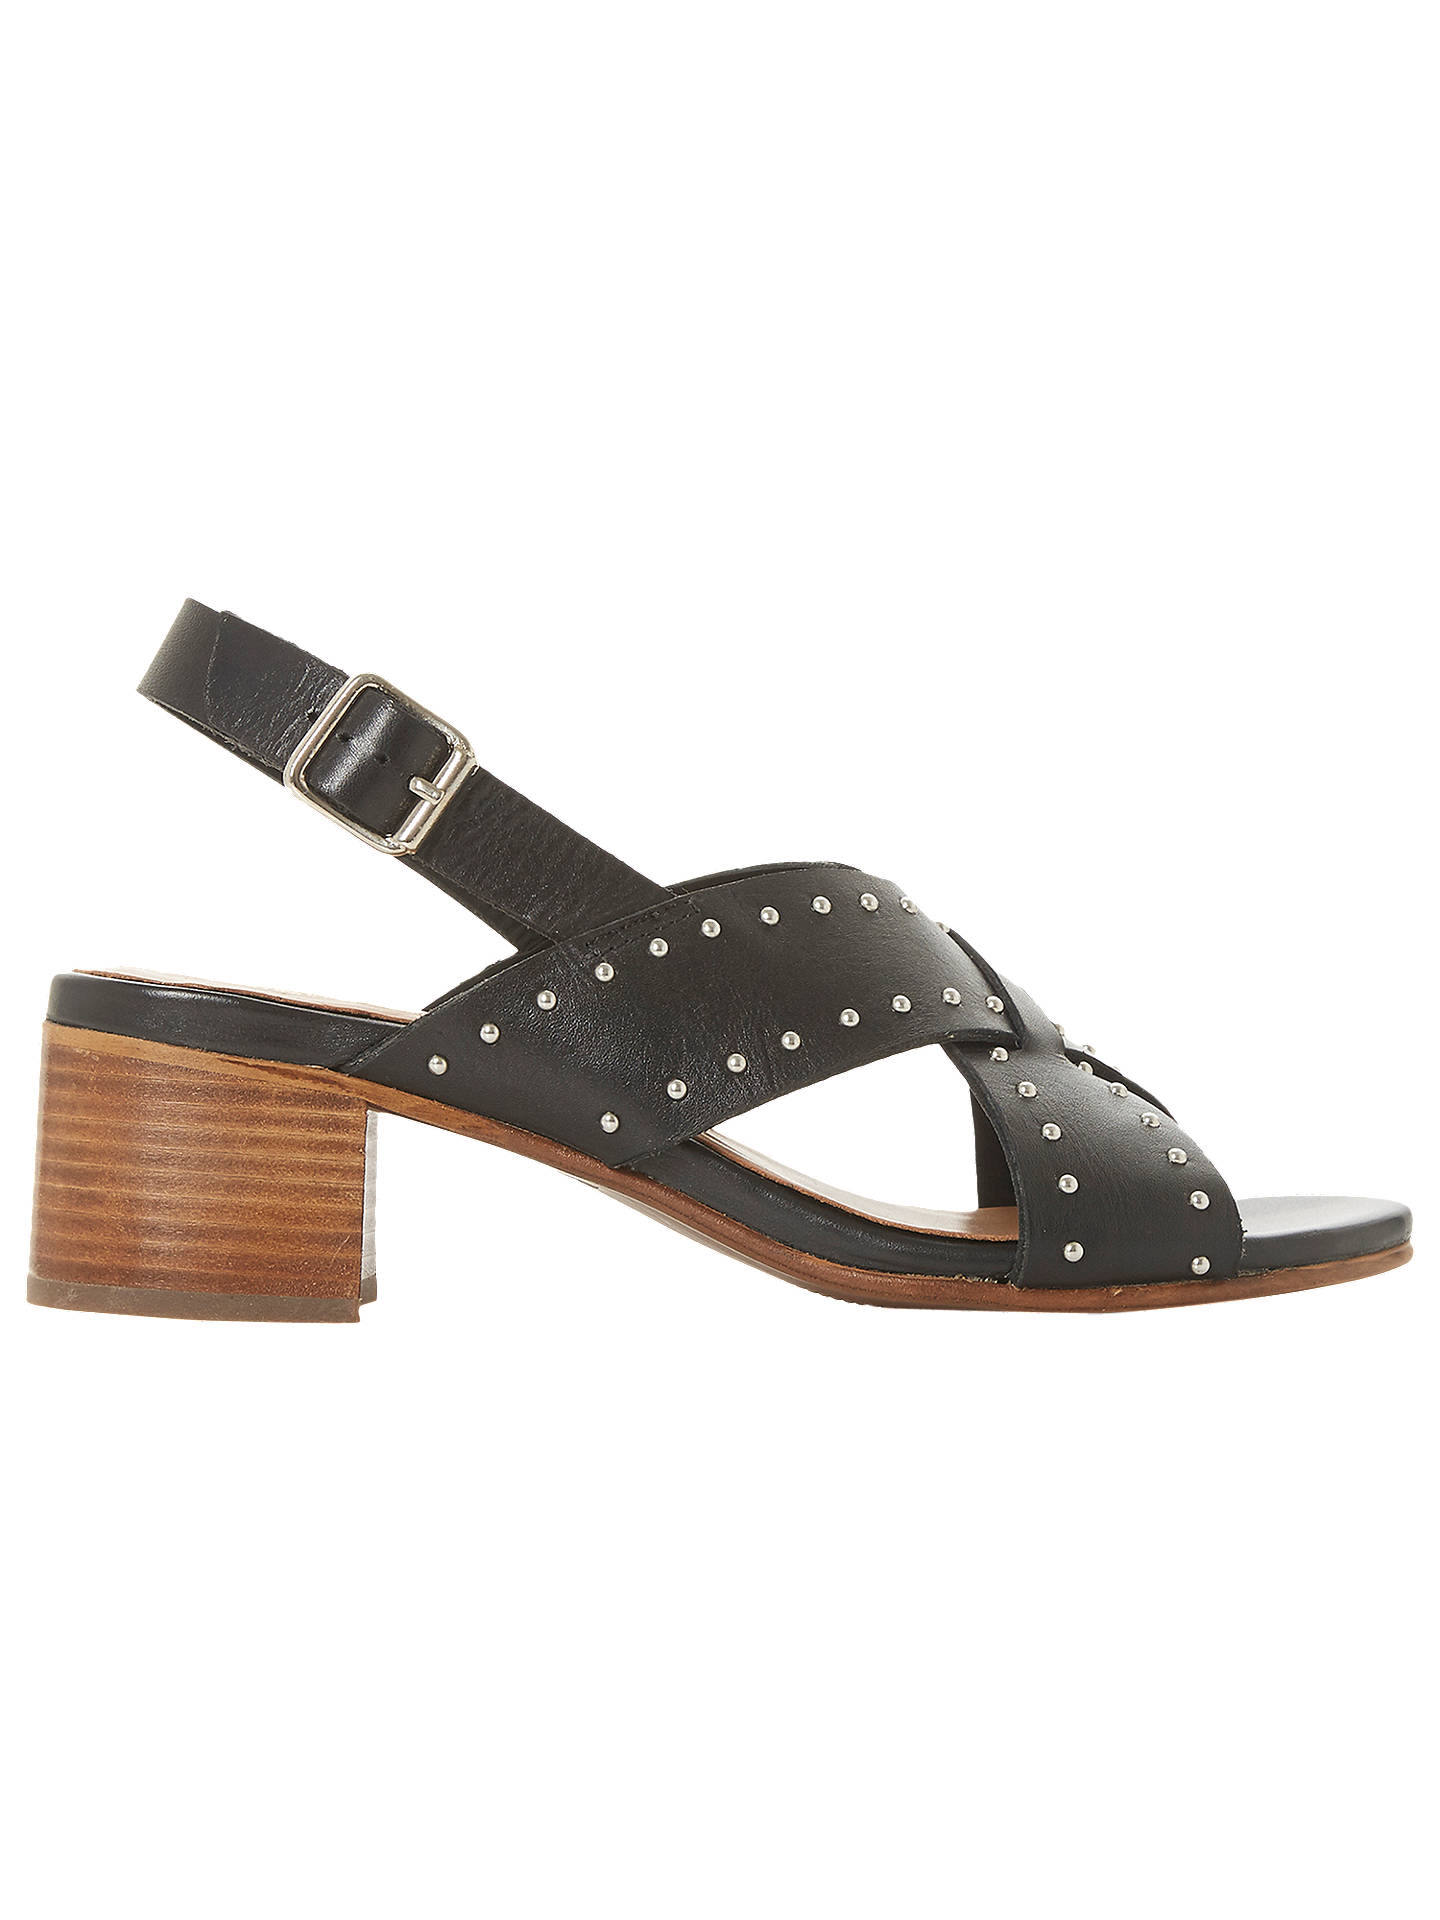 d43455fa679 Bertie Indygo Studded Strap Block Heel Sandals, Black Leather